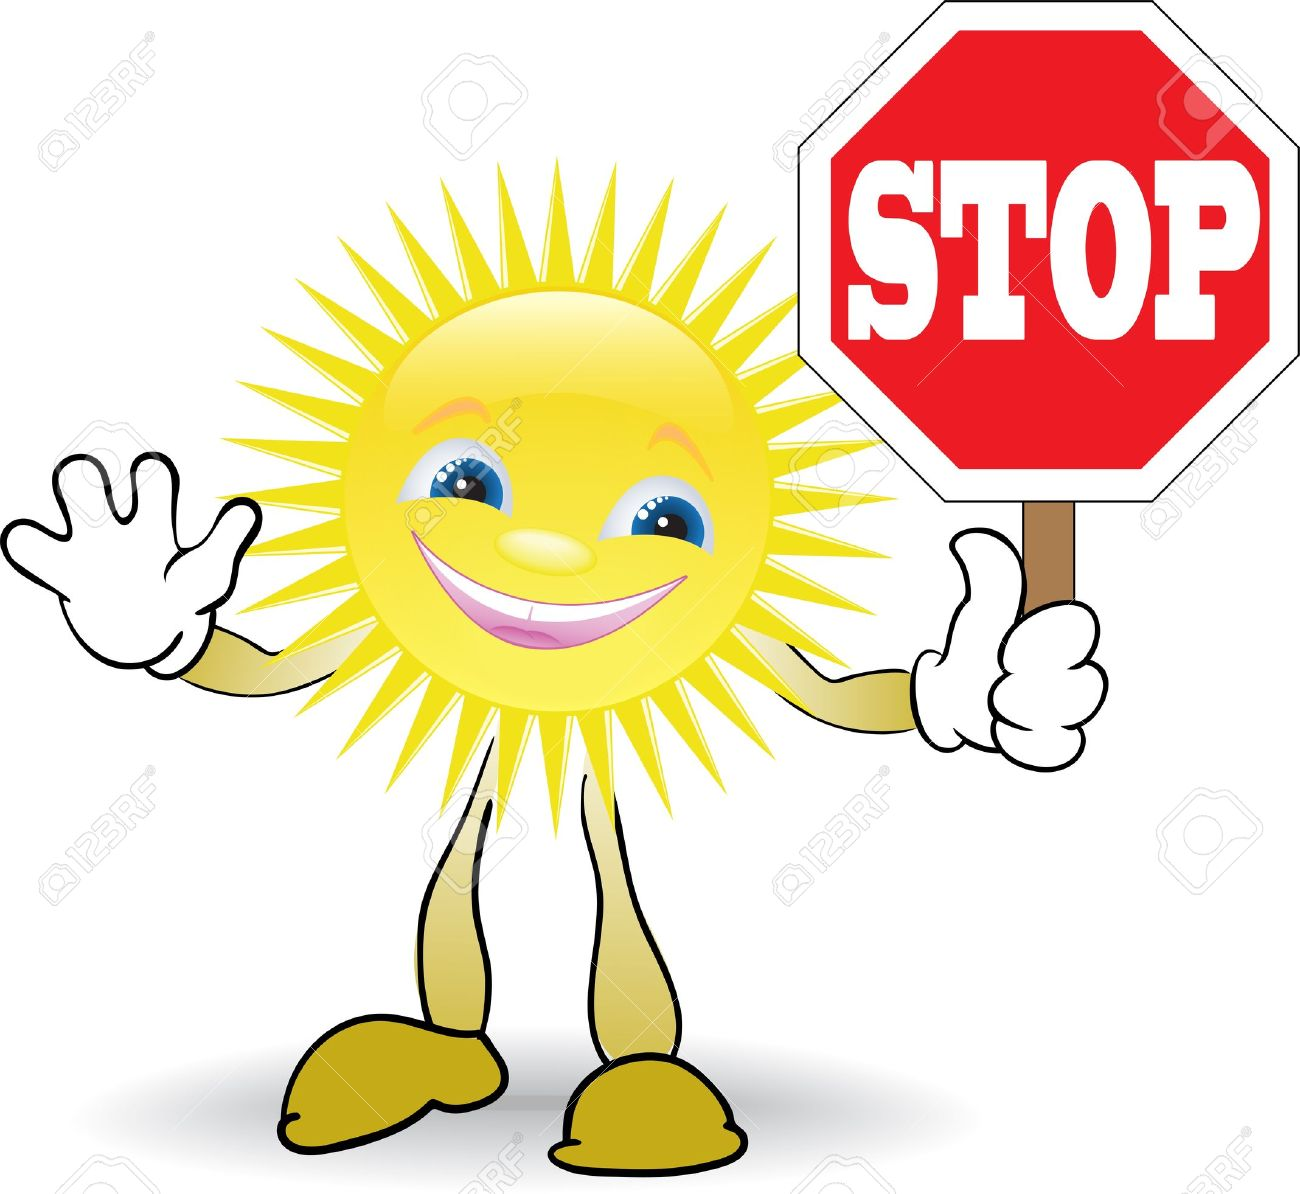 cartoon sun holding red STOP sign Stock Vector - 9529031